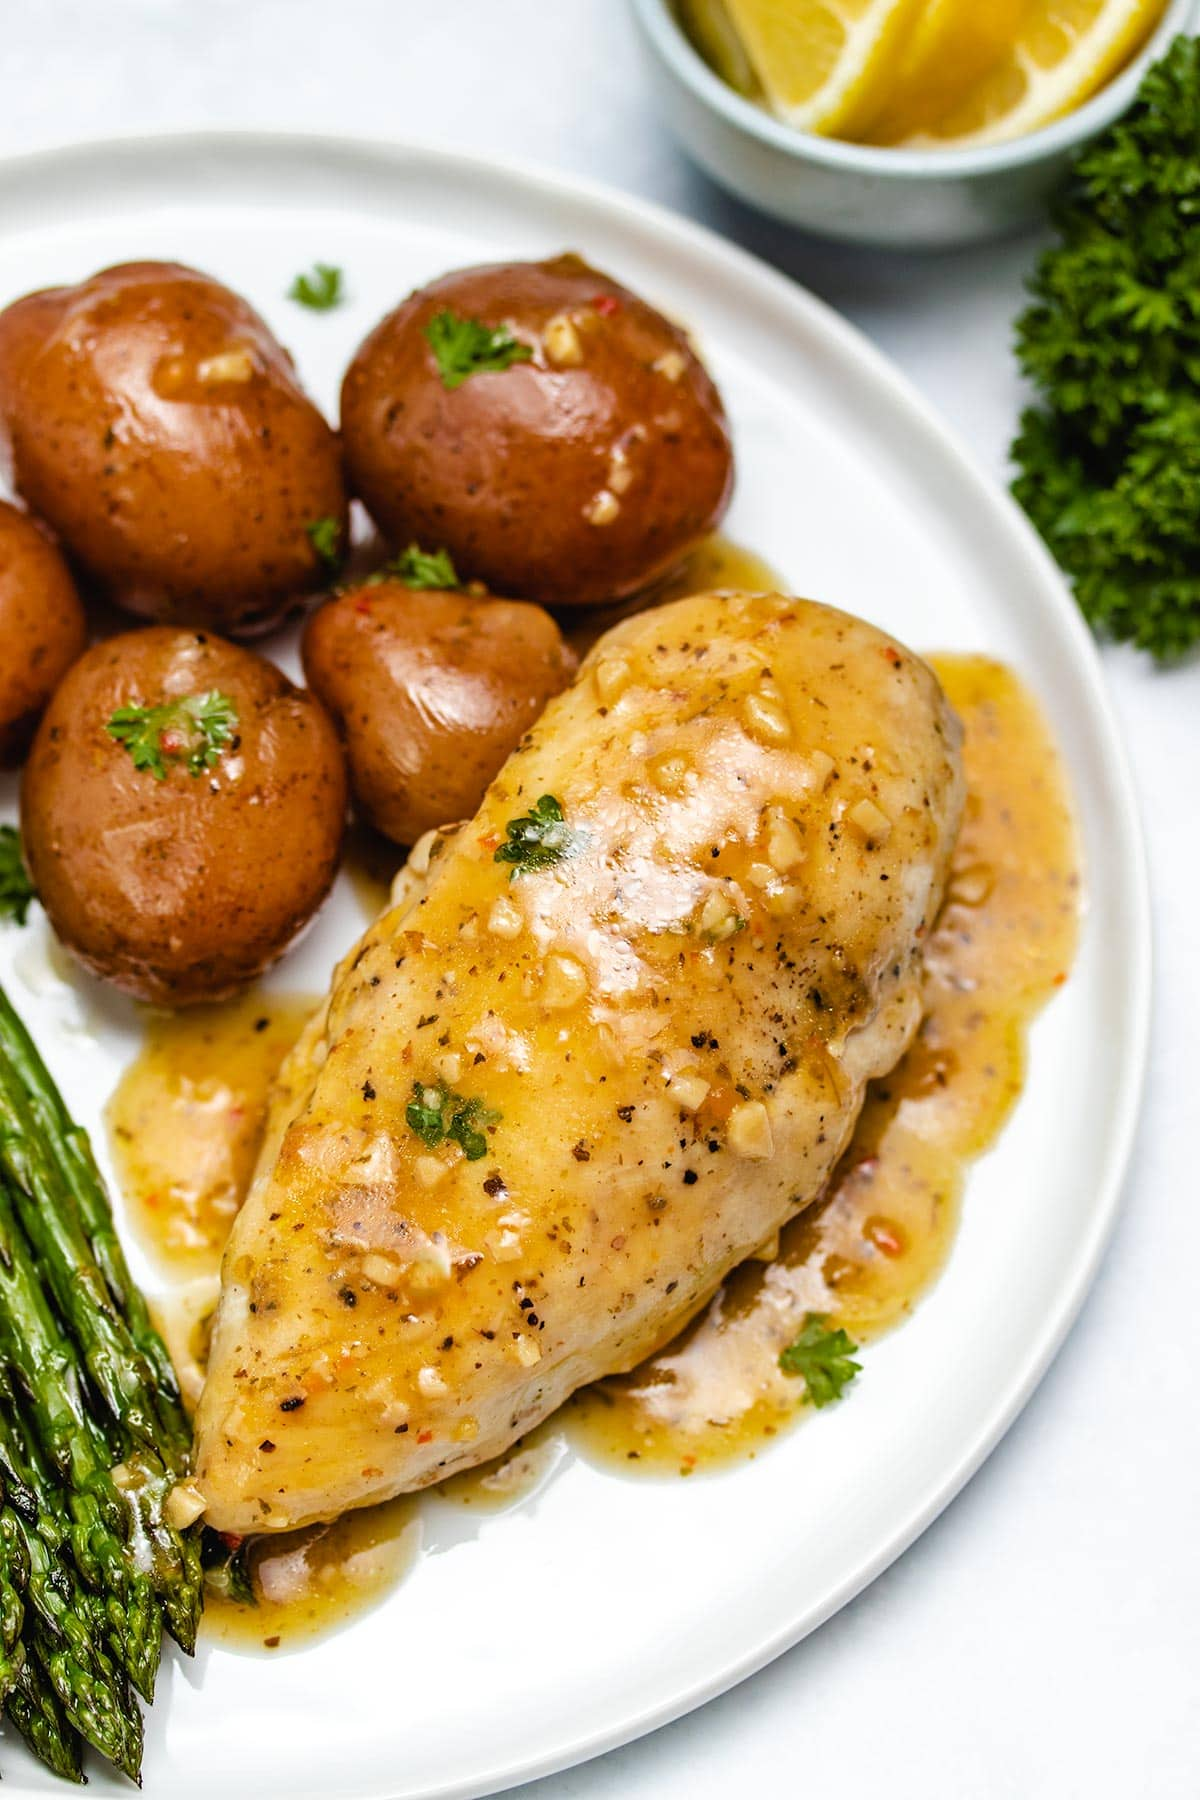 Chicken and potatoes with lemon garlic sauce and asparagus on a white plate